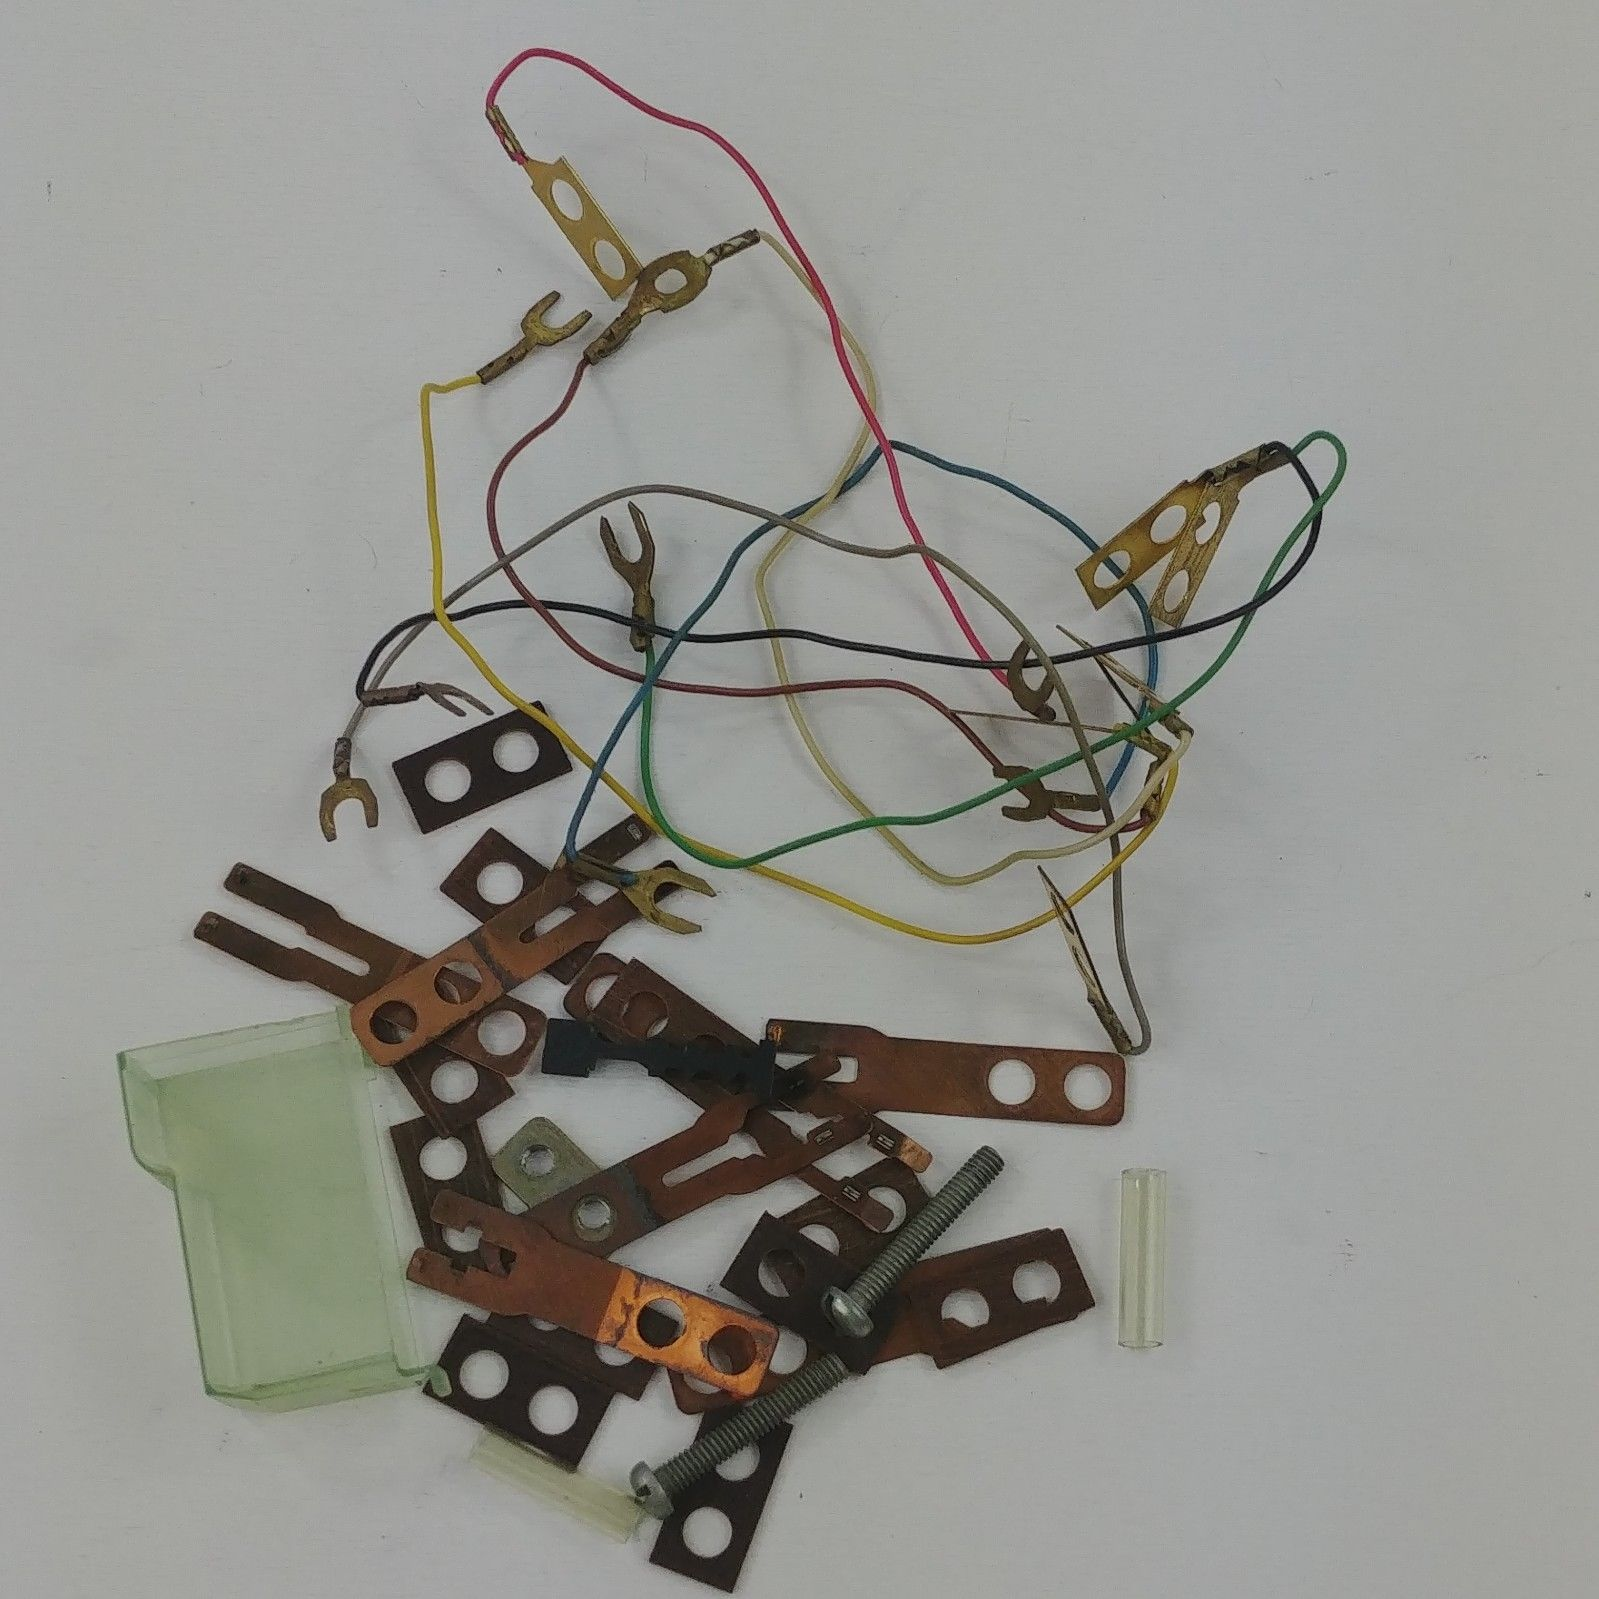 Astounding Vintage Rotary Telephone Replacement Part Itt 148 Wires Cover Switch Wiring Cloud Hisonuggs Outletorg